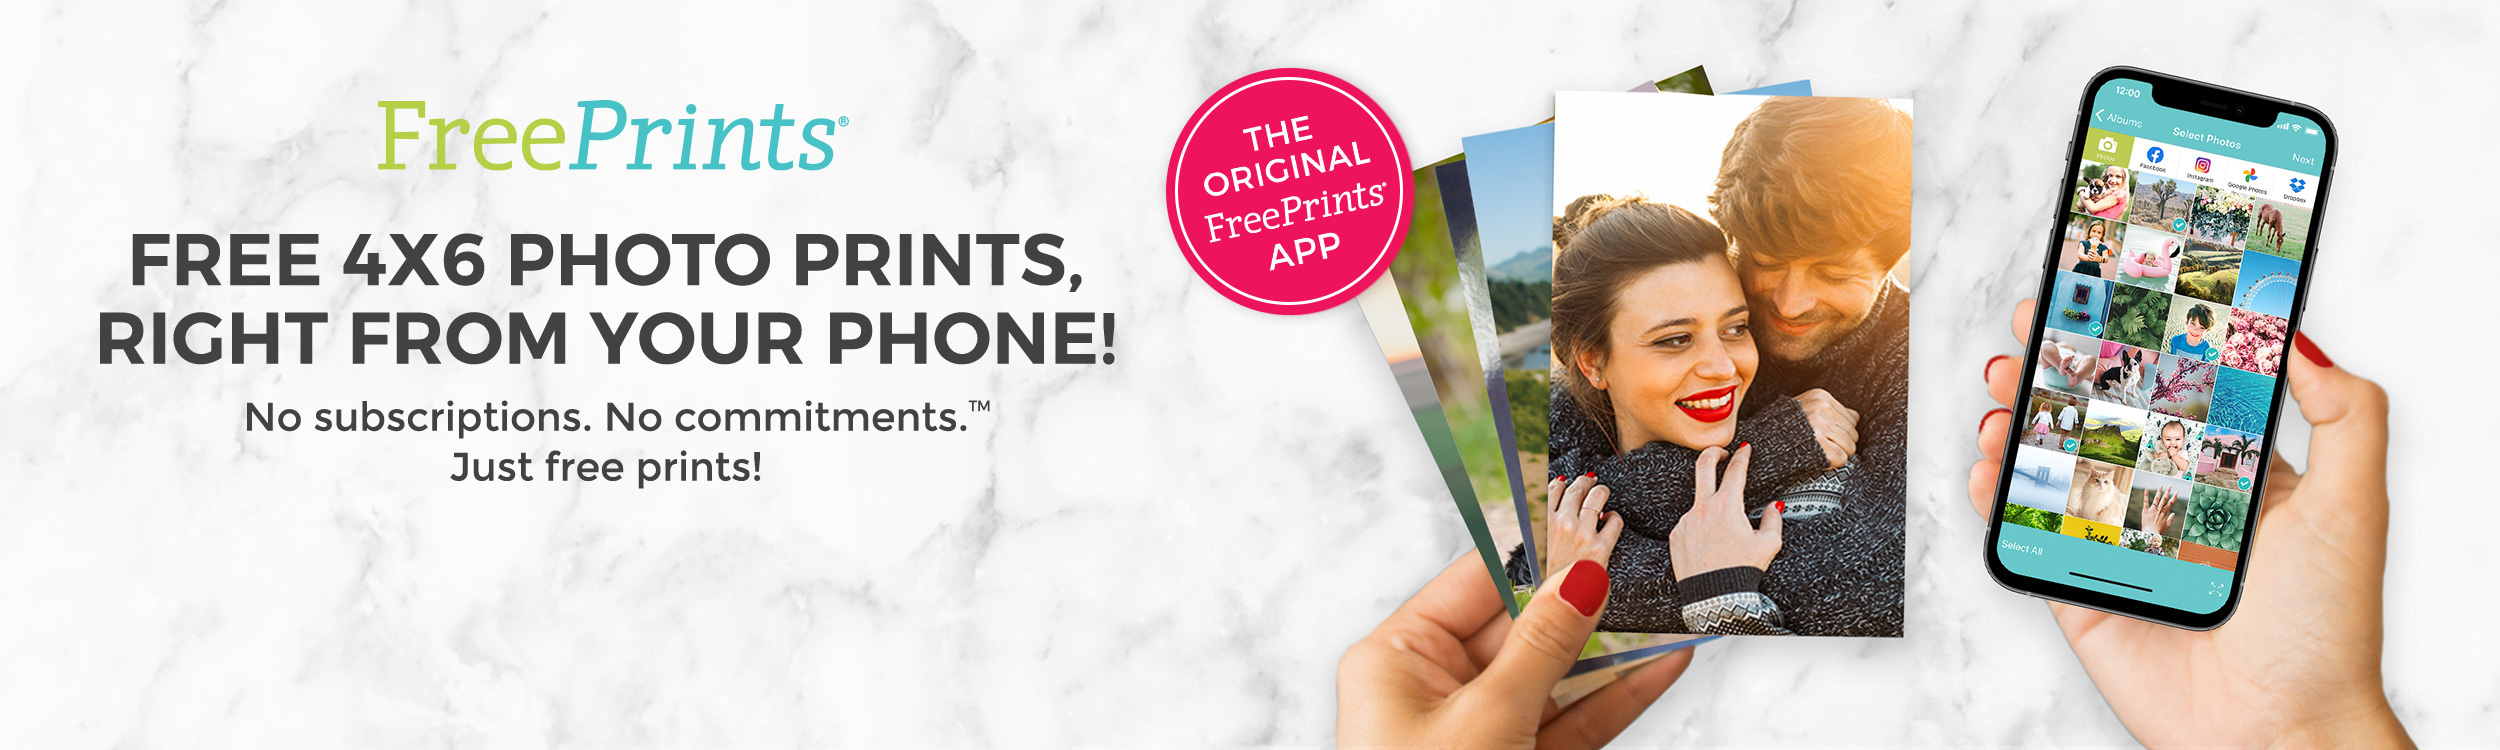 Free 4x6 Photo Prints, Right from your phone!